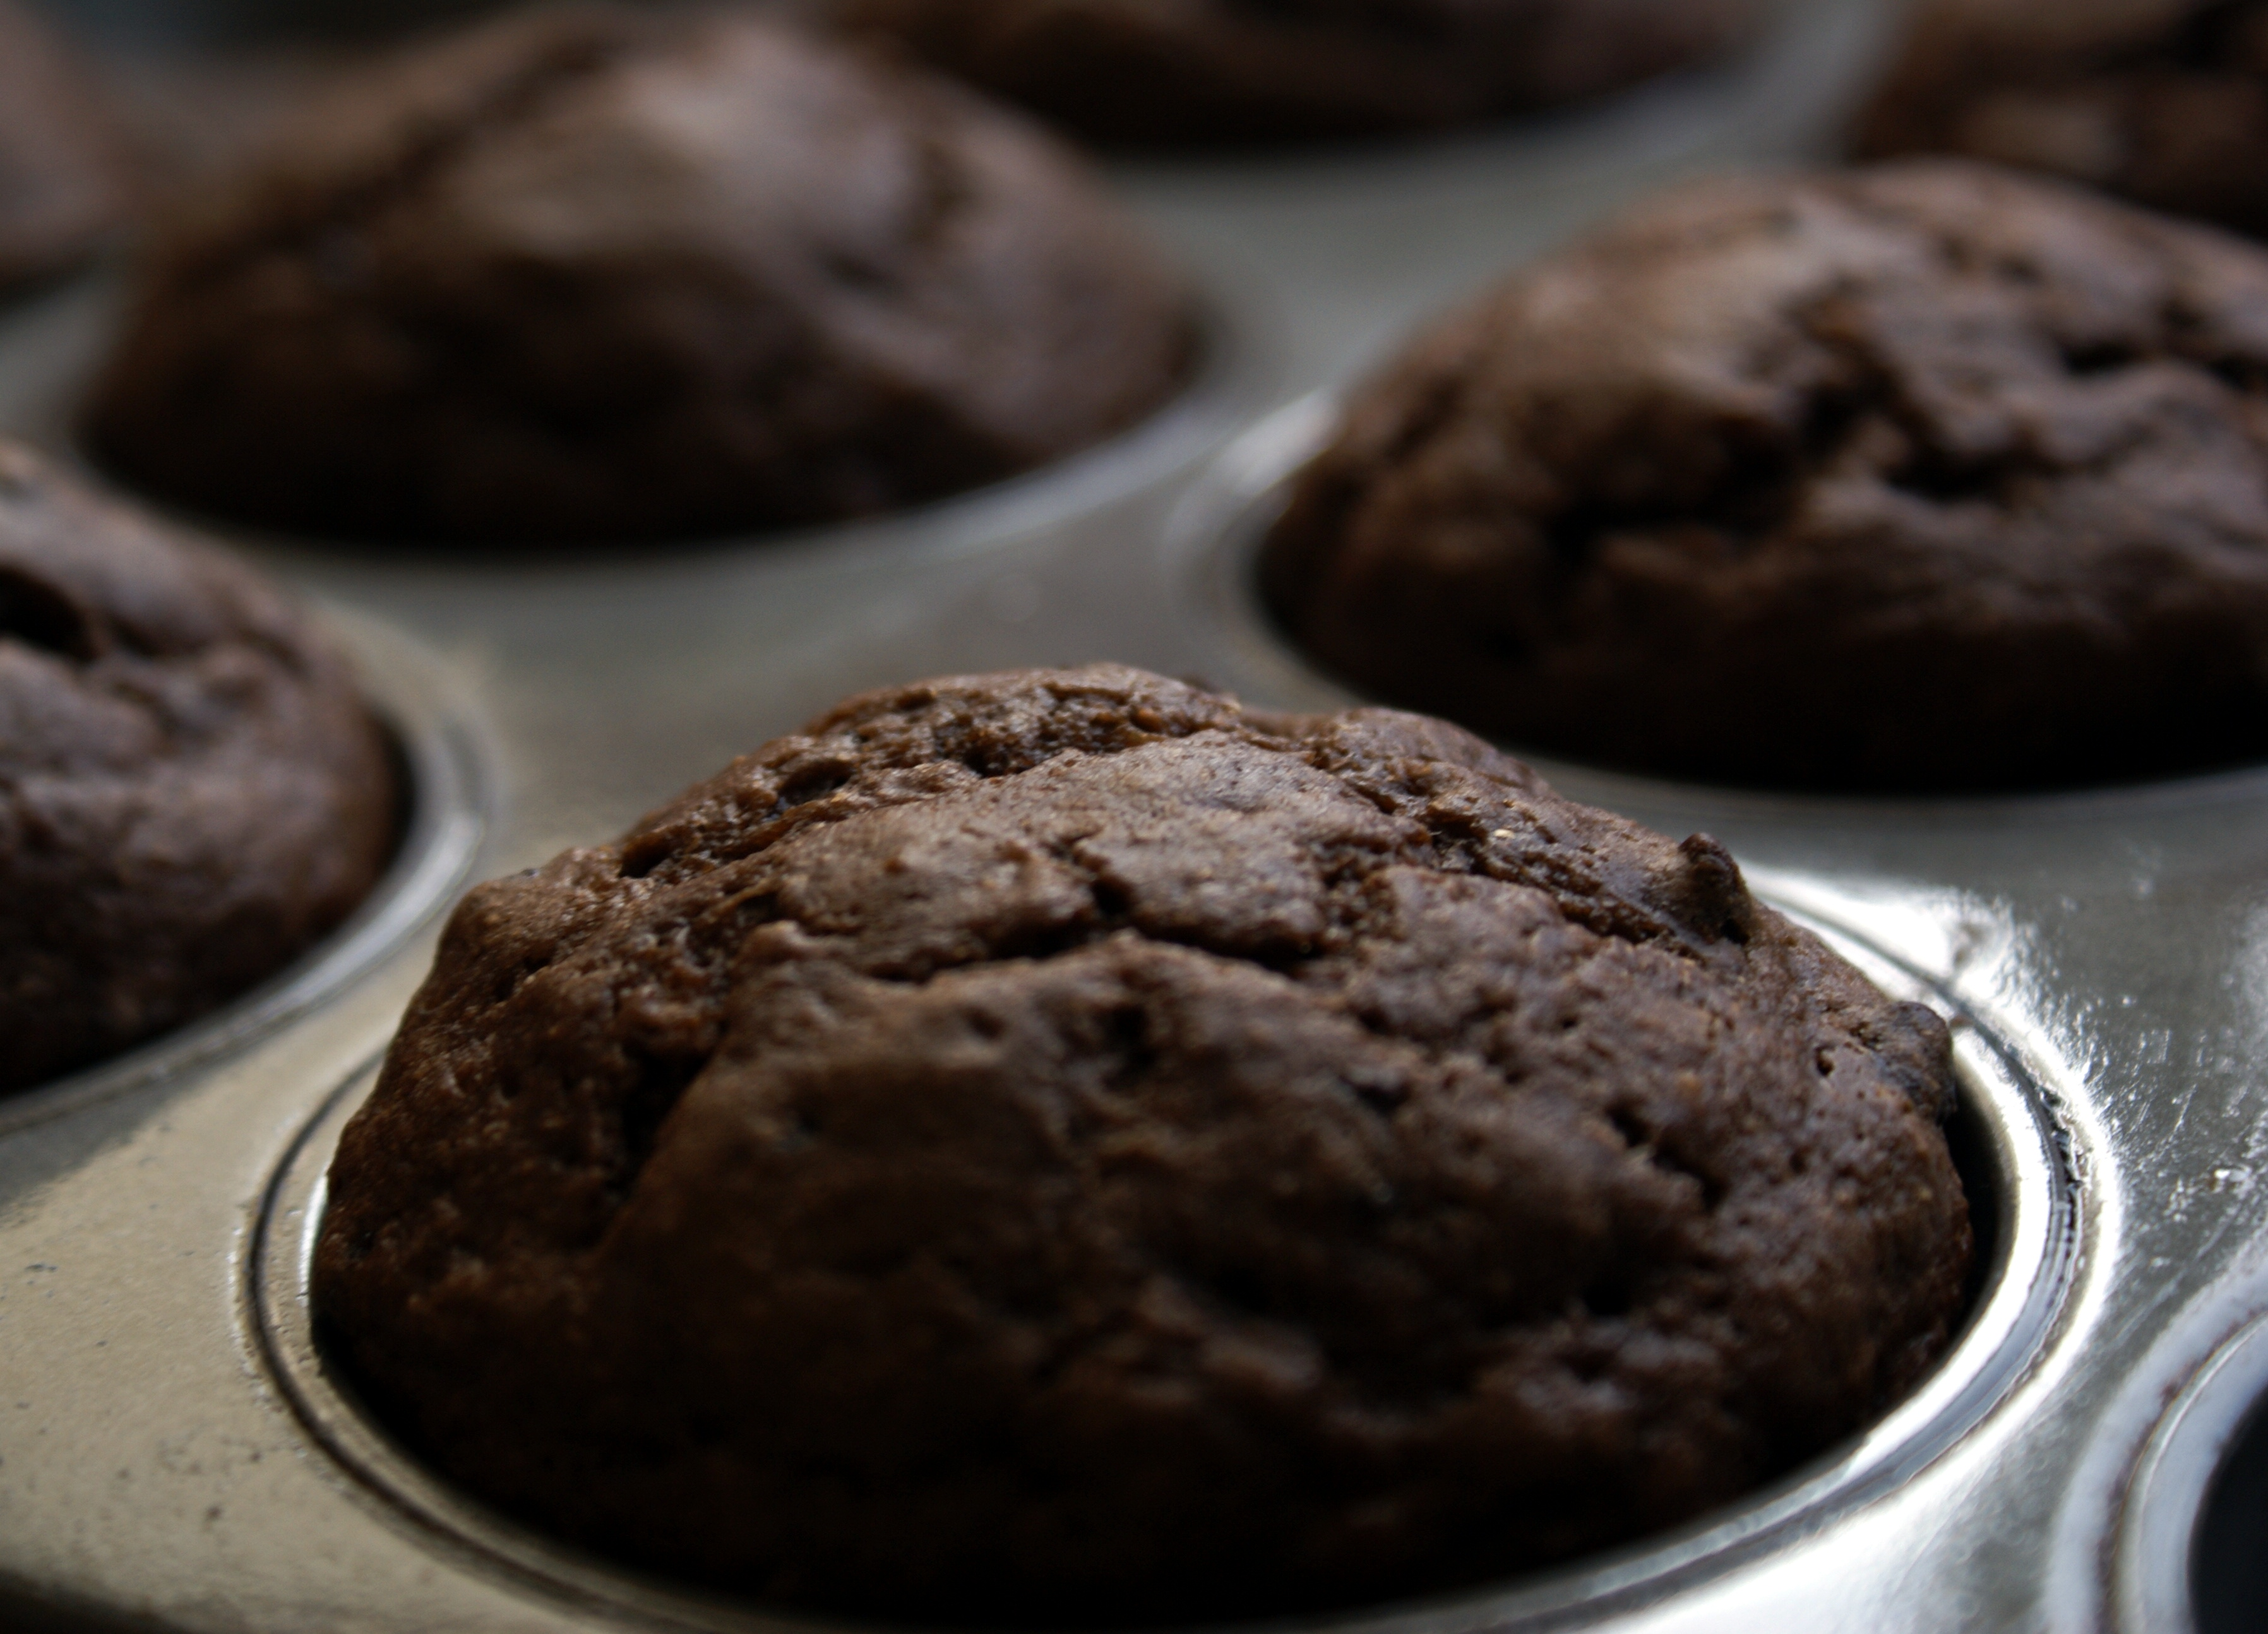 Ultra Low-Fat Double Chocolate Banana Muffins-makes 7-8 large muffins: